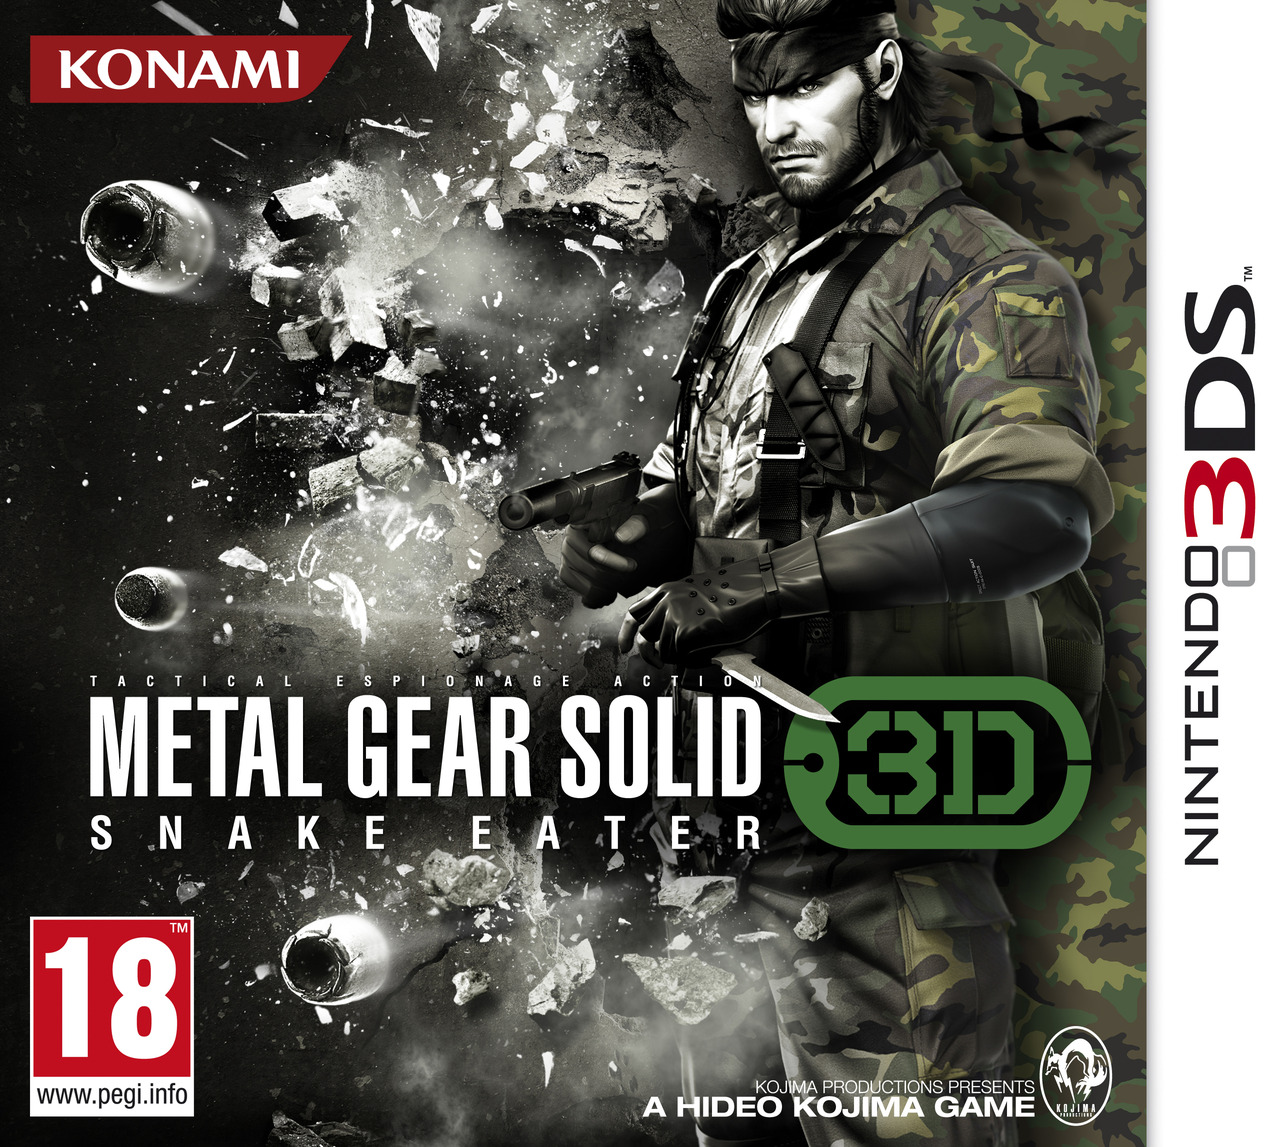 jaquette-metal-gear-solid-snake-eater-nintendo-3ds-cover-avant-g-1326377001.jpg